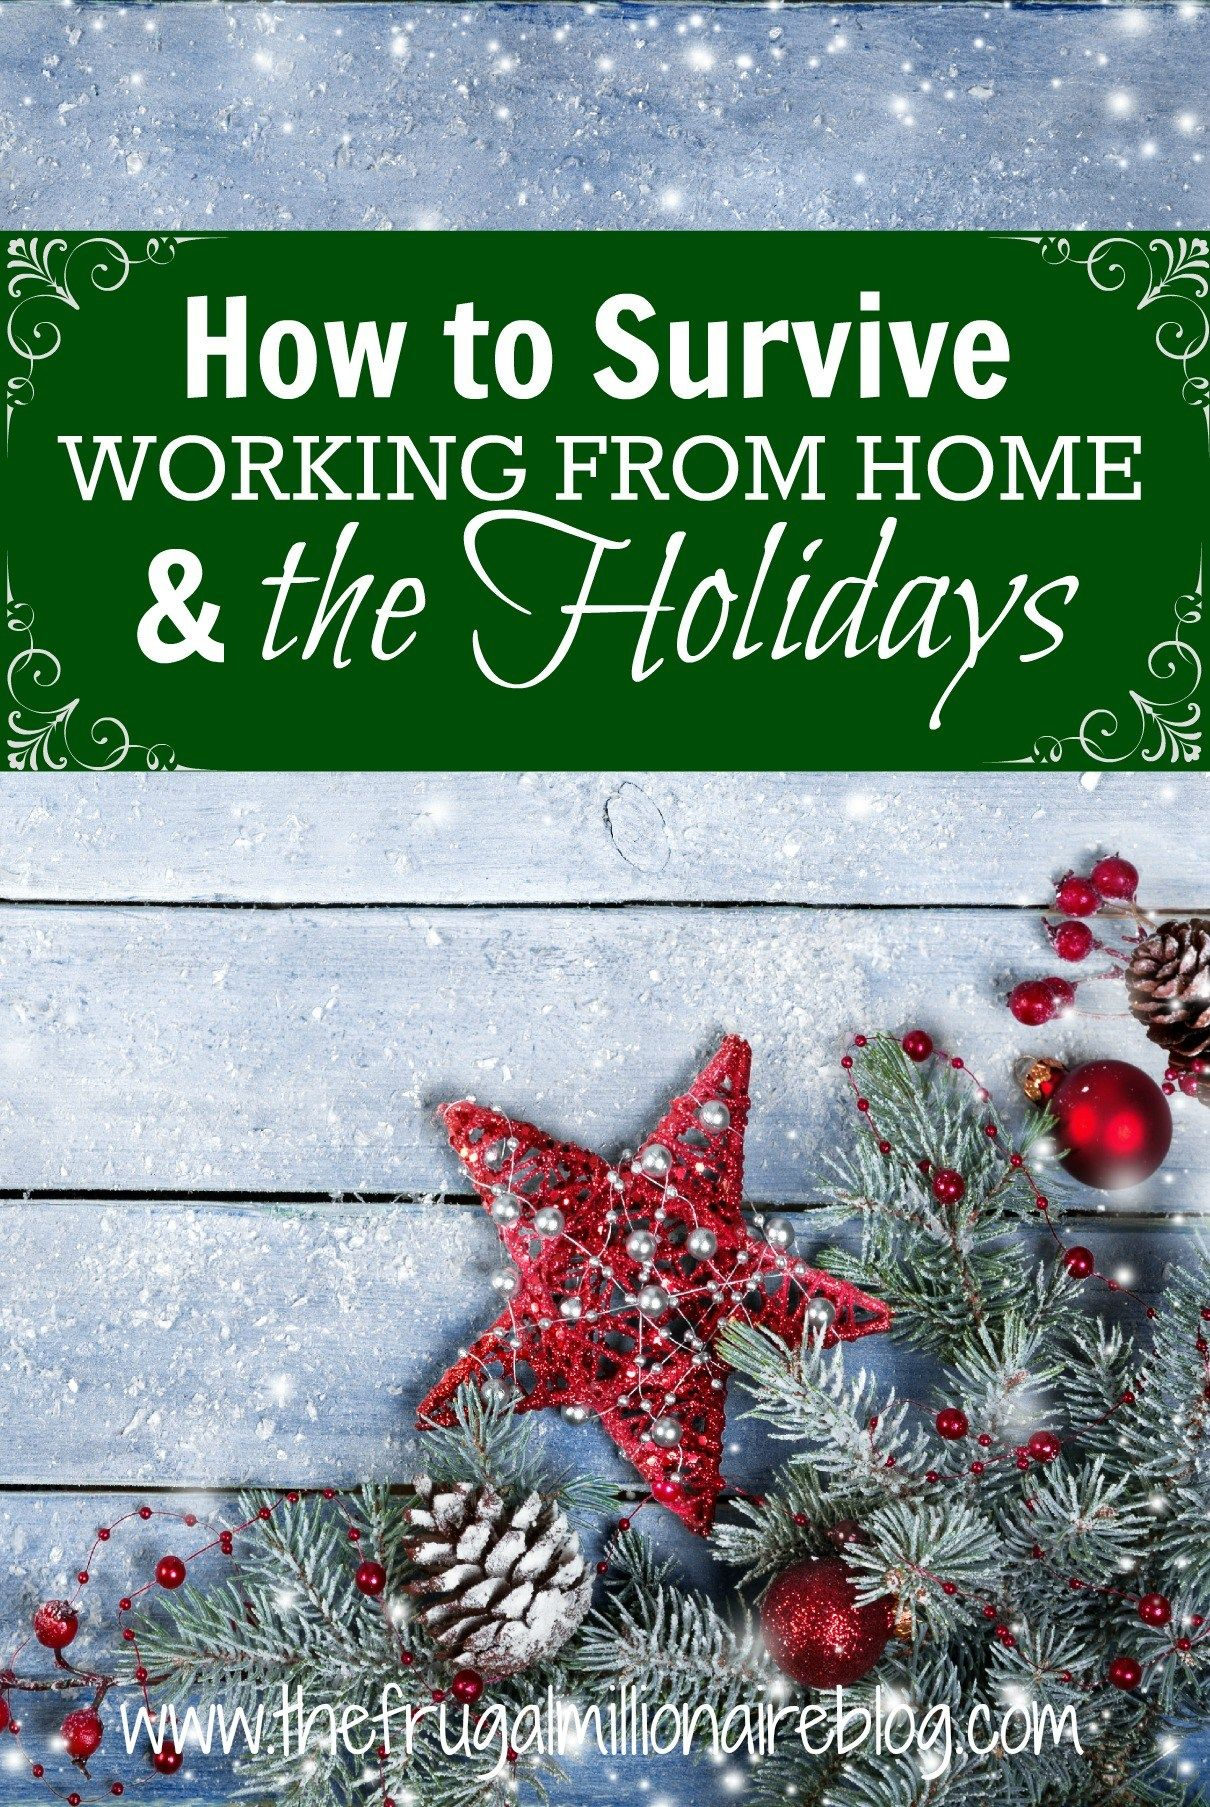 How to Survive Working from Home and the Holidays - the frugal millionaire